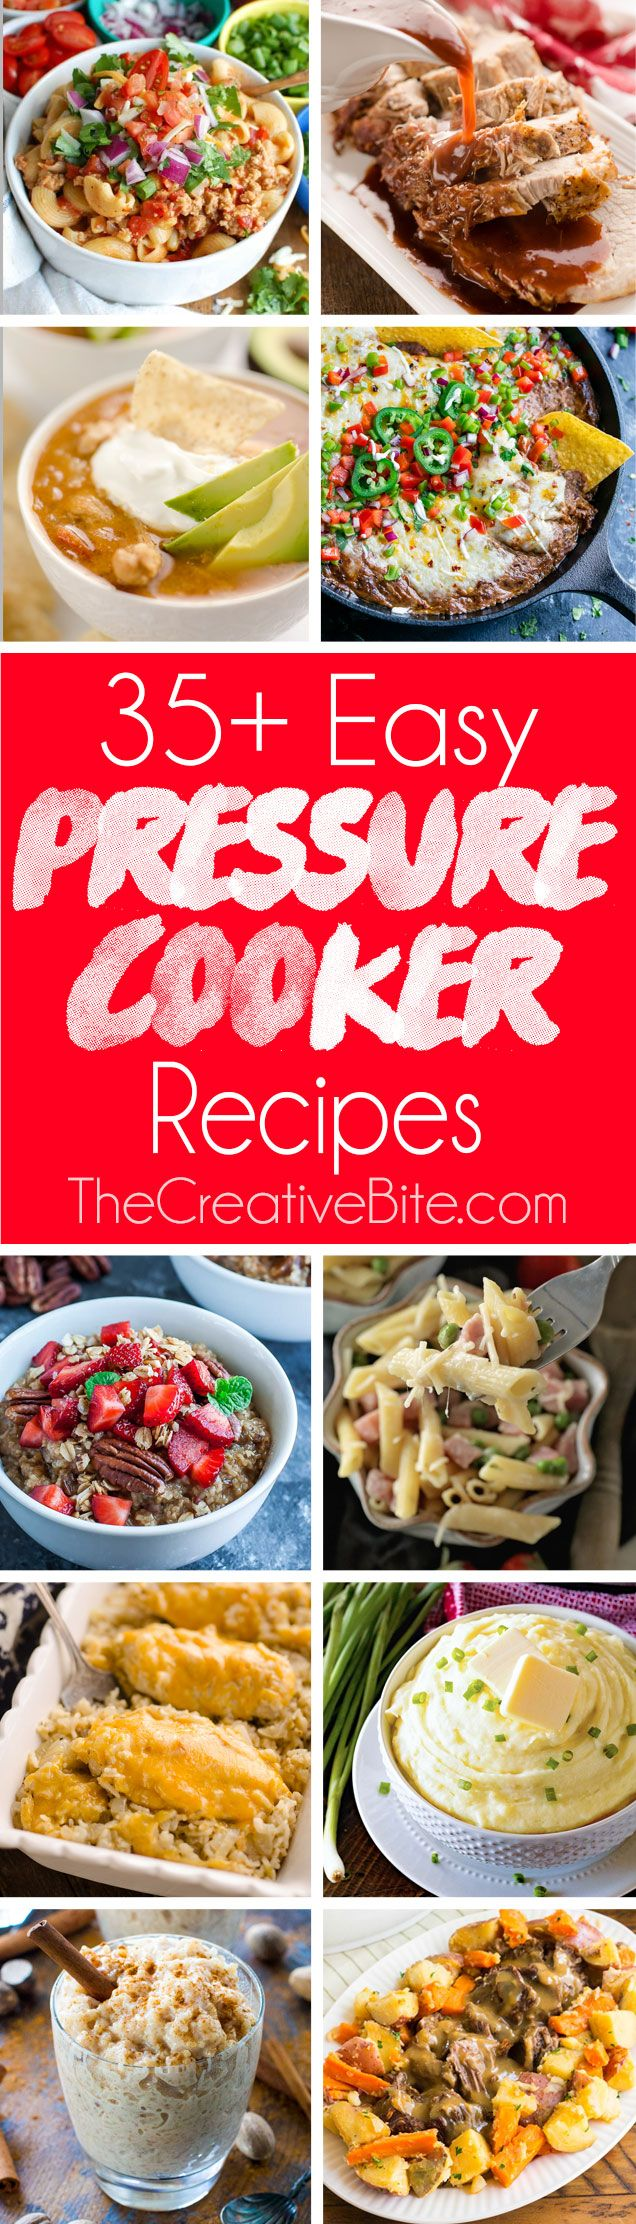 Easy Electric Pressure Cooker Recipes for your Instant Pot are perfect for beginners and anyone looking for new and exciting dinner ideas.  #InstantPot #PressureCooker #Recipes